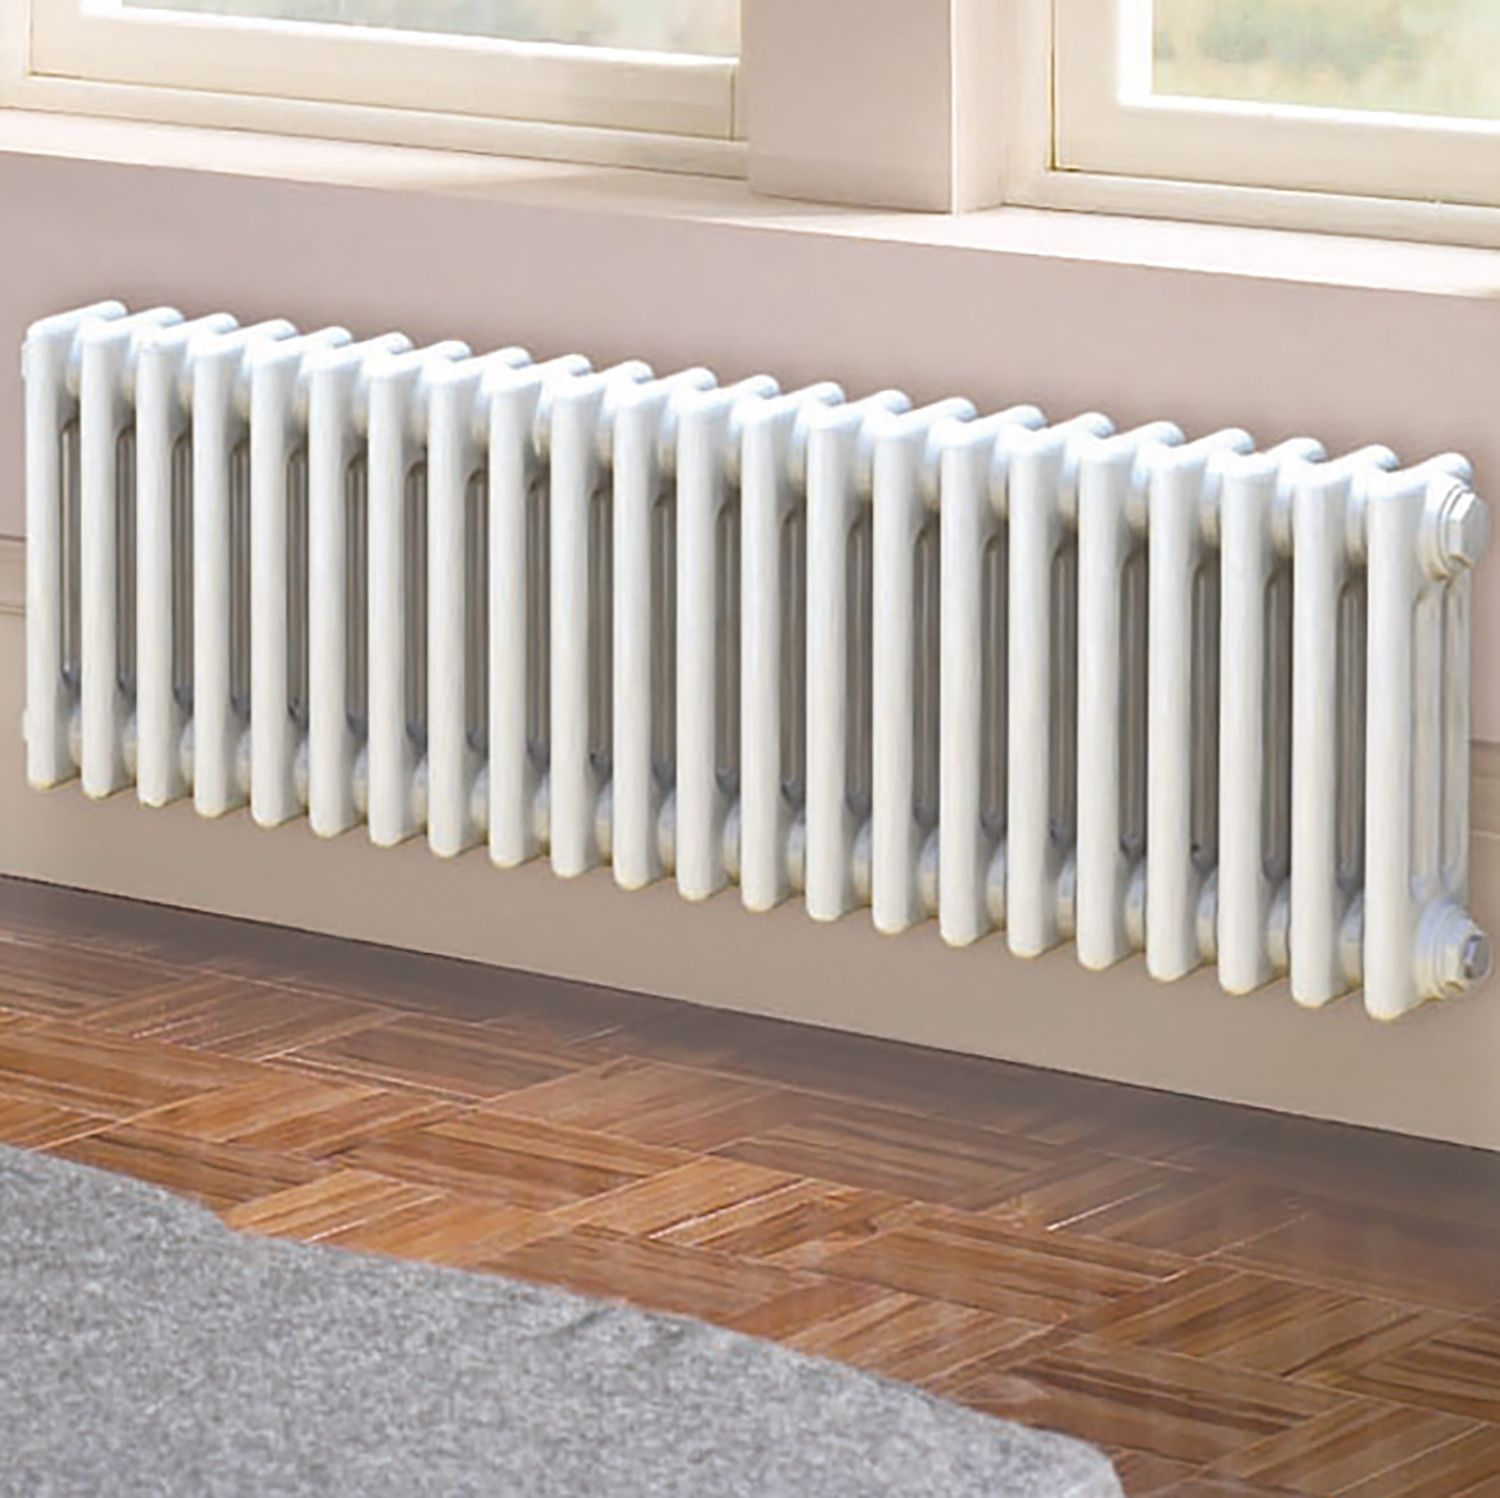 Acova 3 Column radiator, White (W)812mm (H)300mm